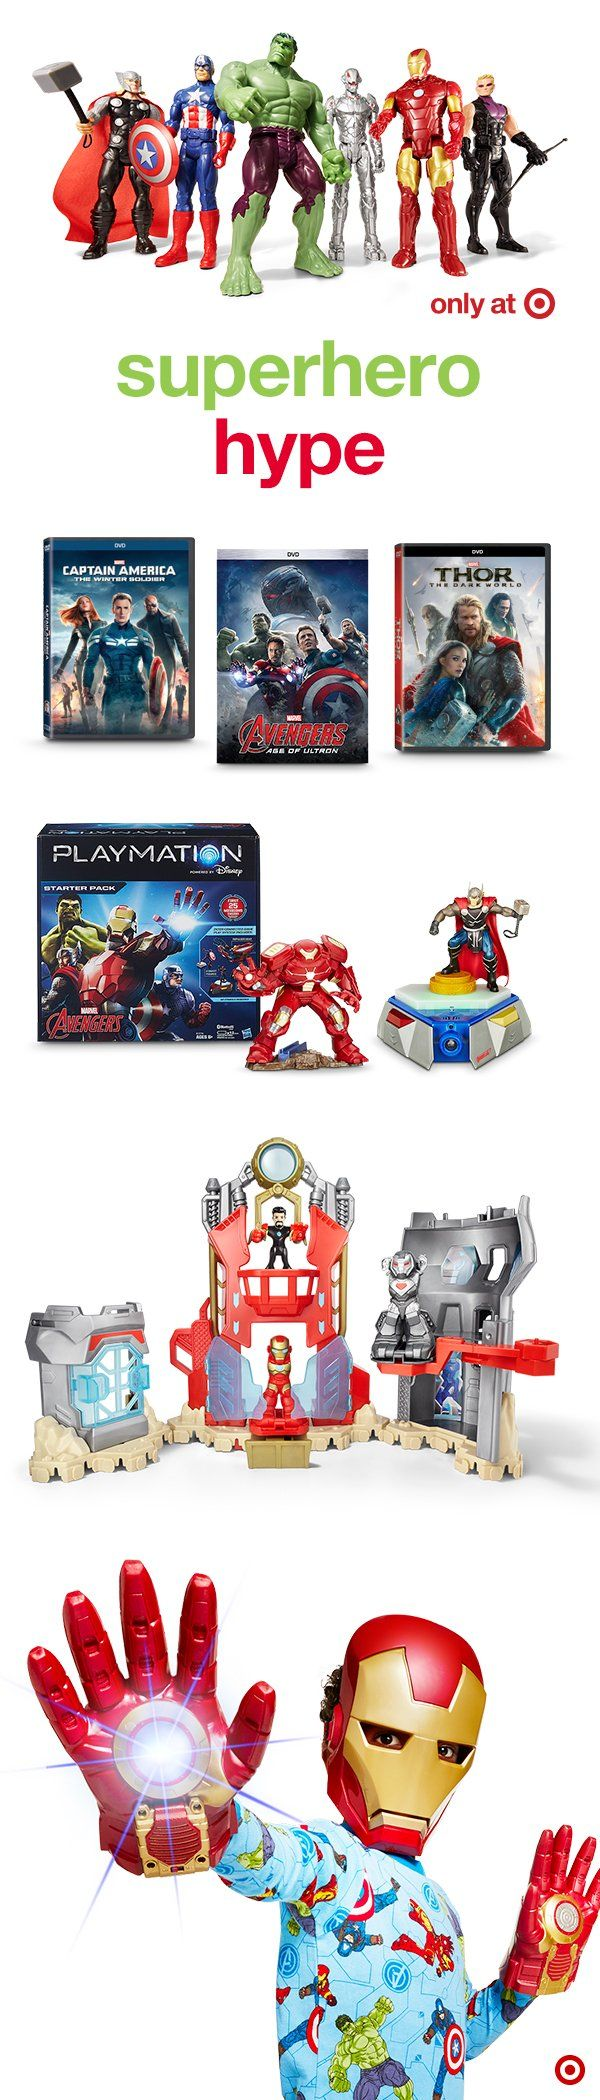 Batman Toys For Boys For Christmas : Give superhero sized fun this christmas with toys movies